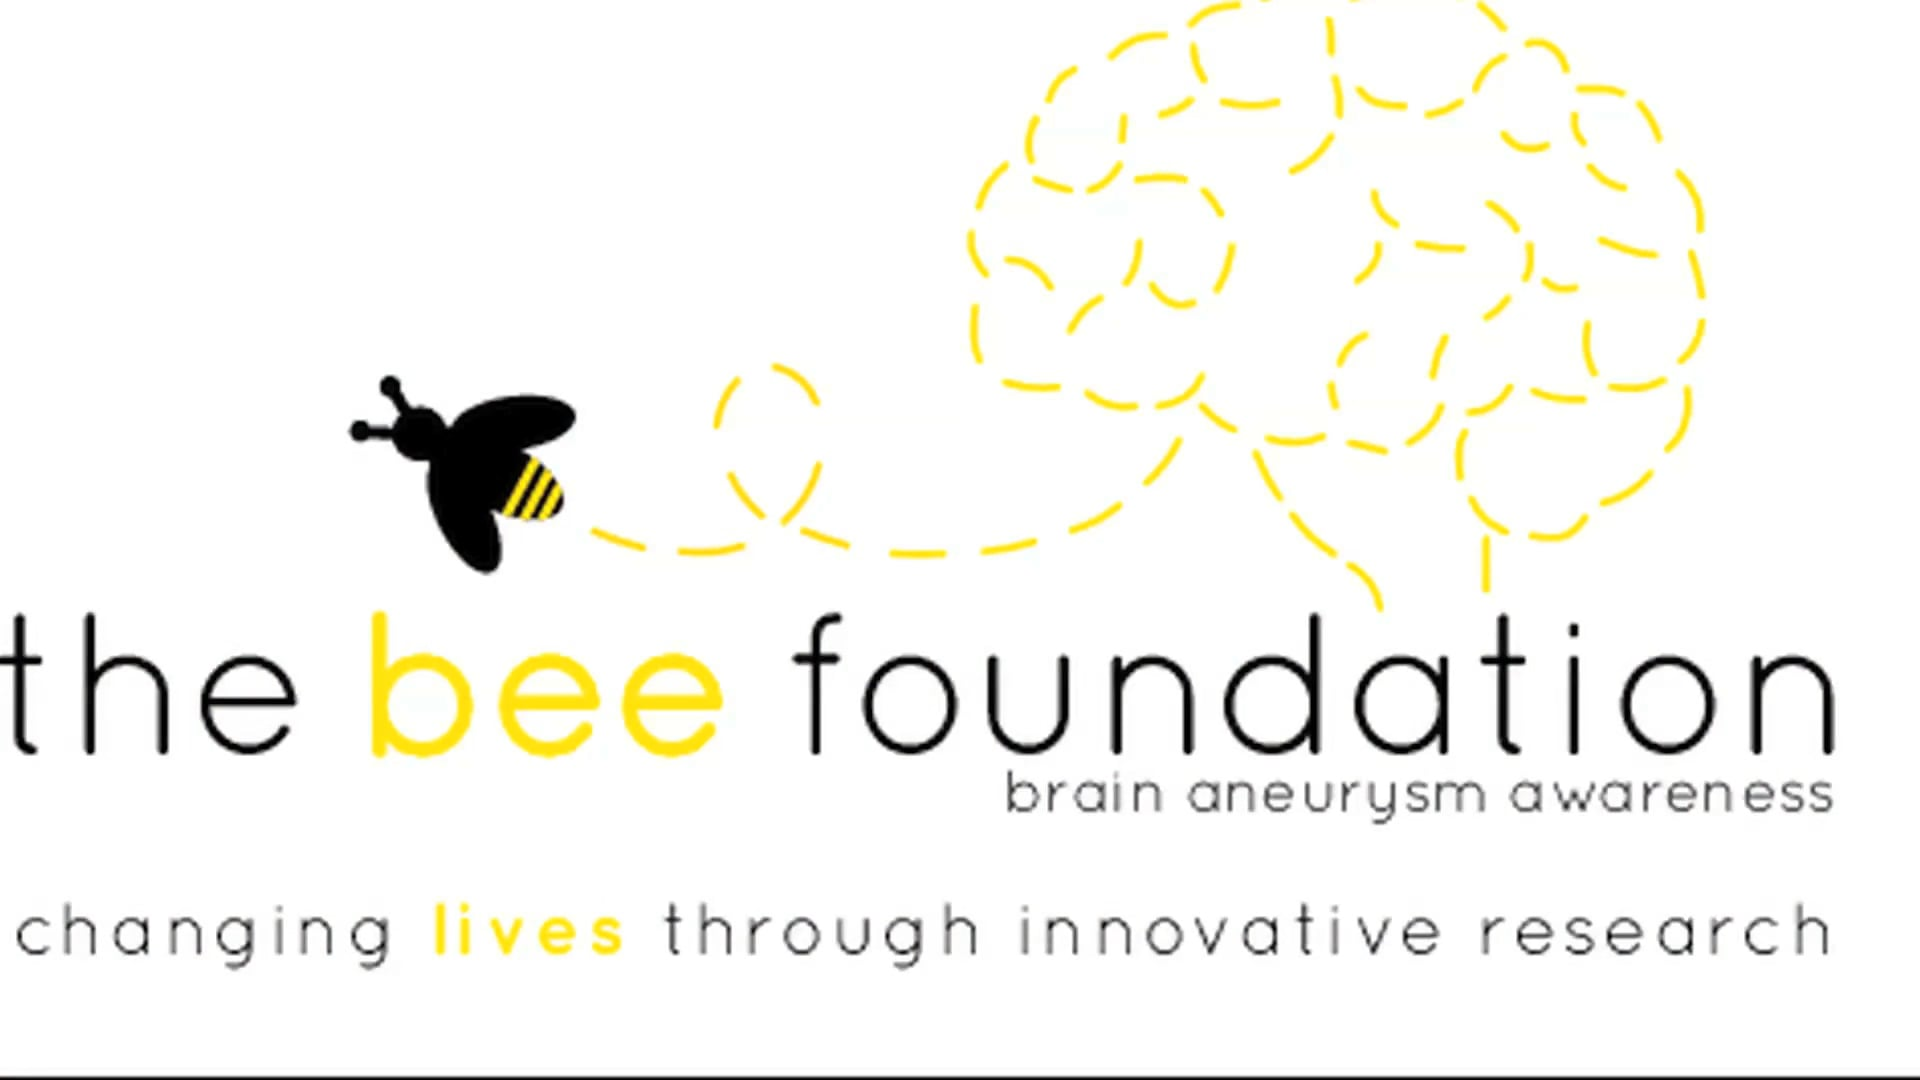 The Bee Foundation brain aneurysm research and awareness